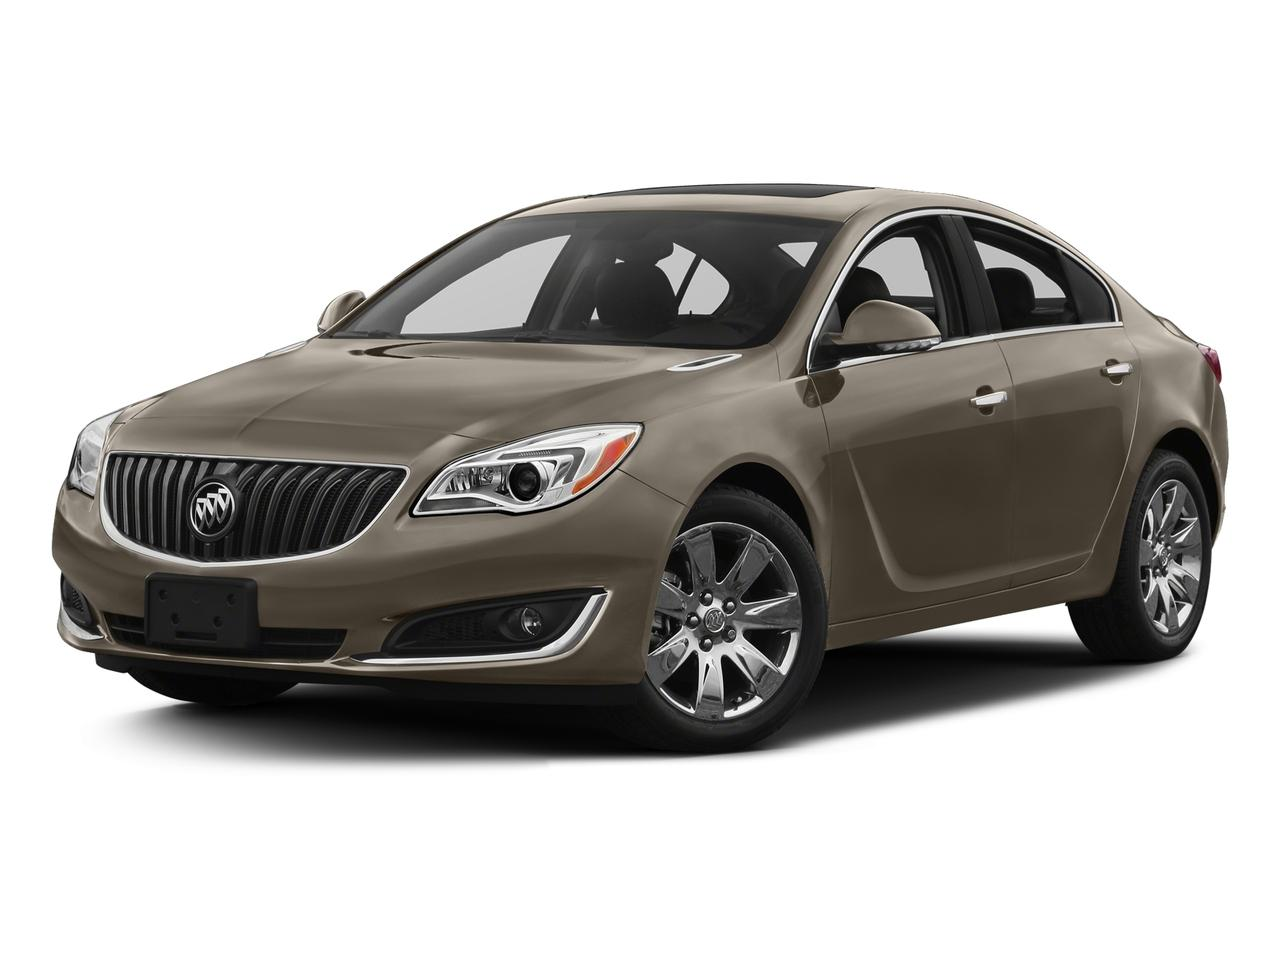 2017 Buick Regal Vehicle Photo in Anaheim, CA 92806